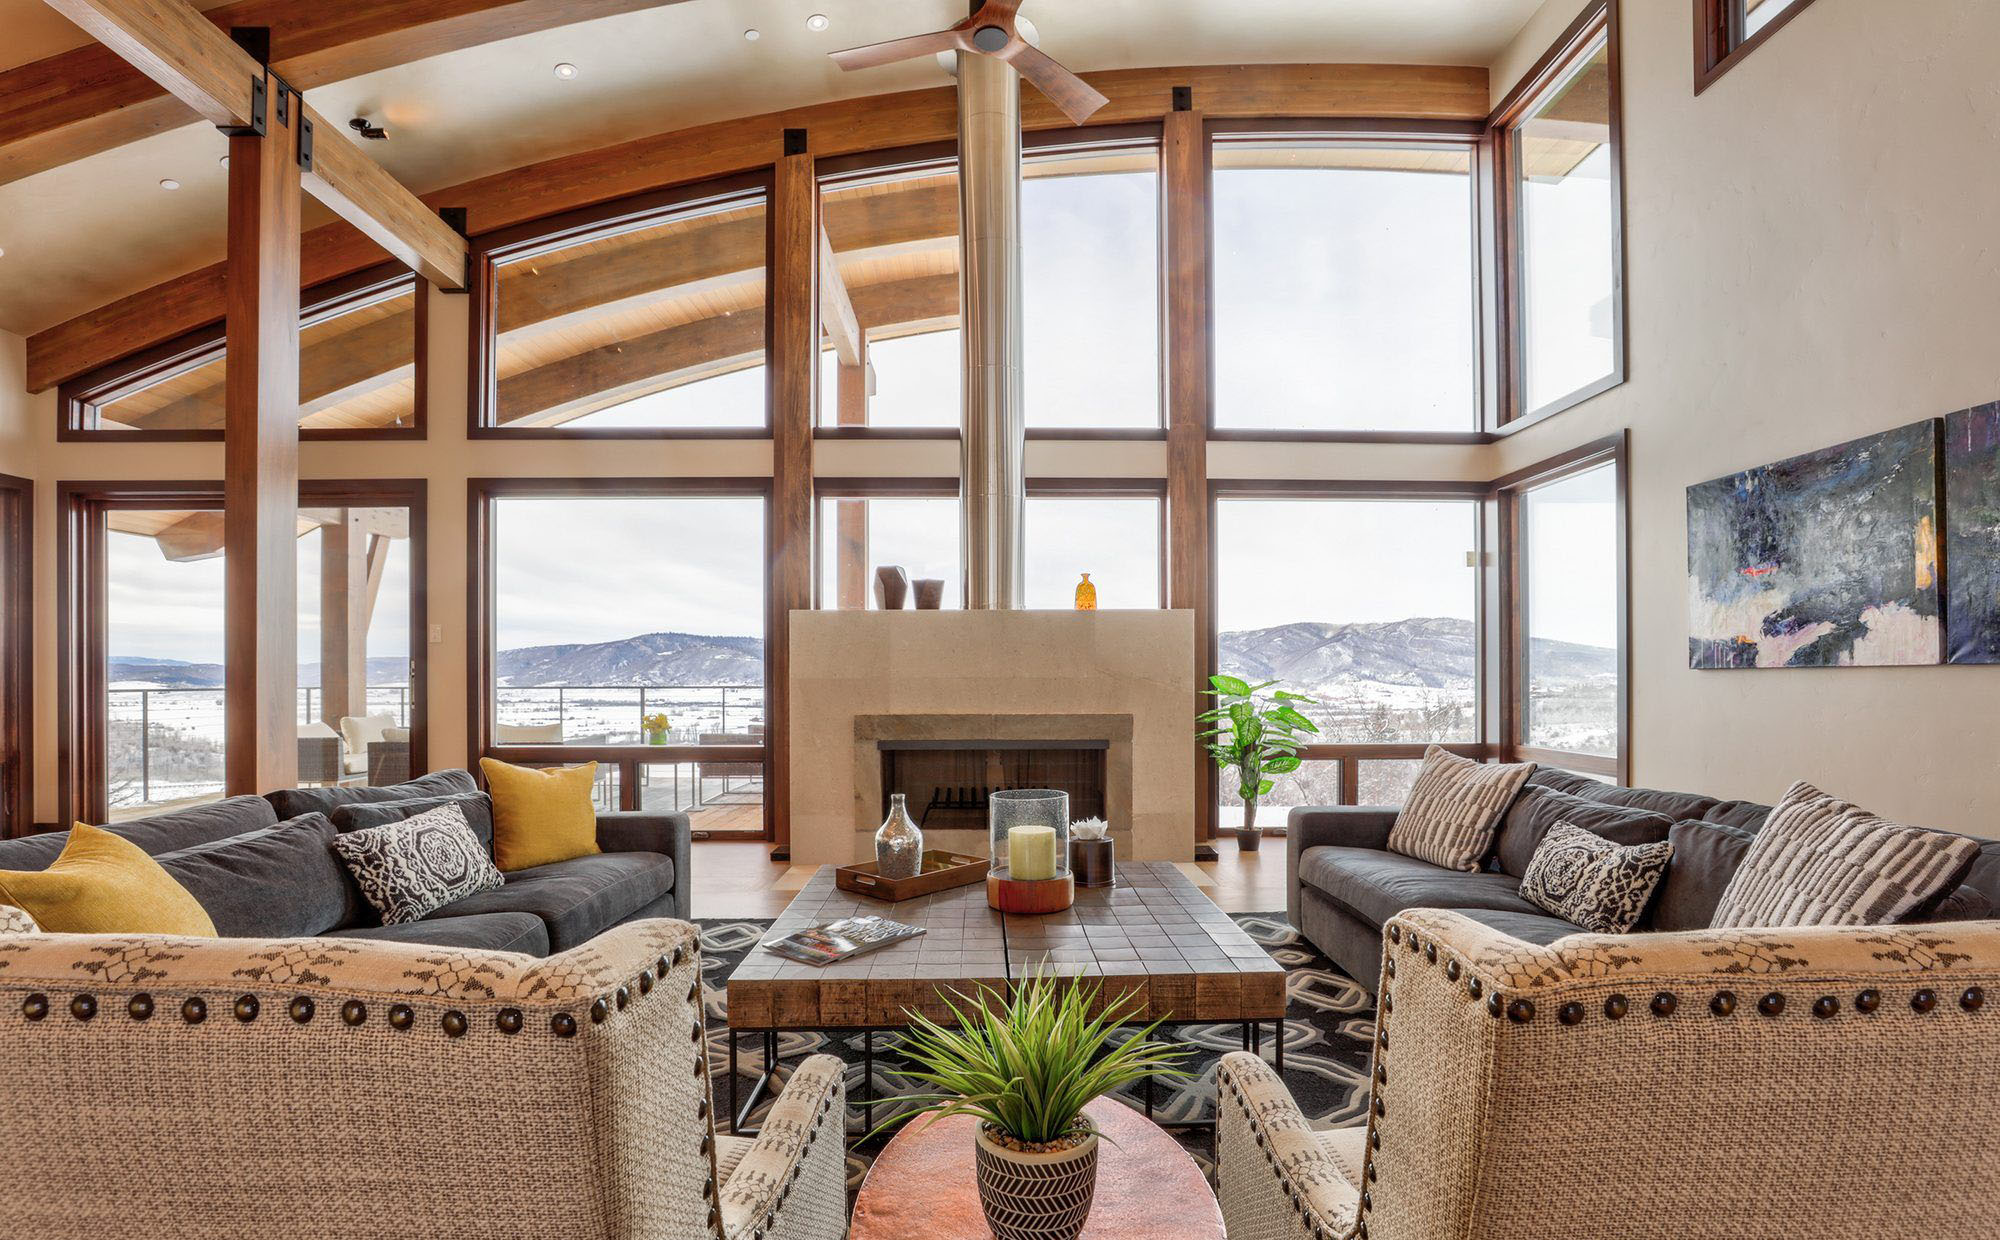 Standalone fireplace surround in front of a spectacular country view and a wall of glass.